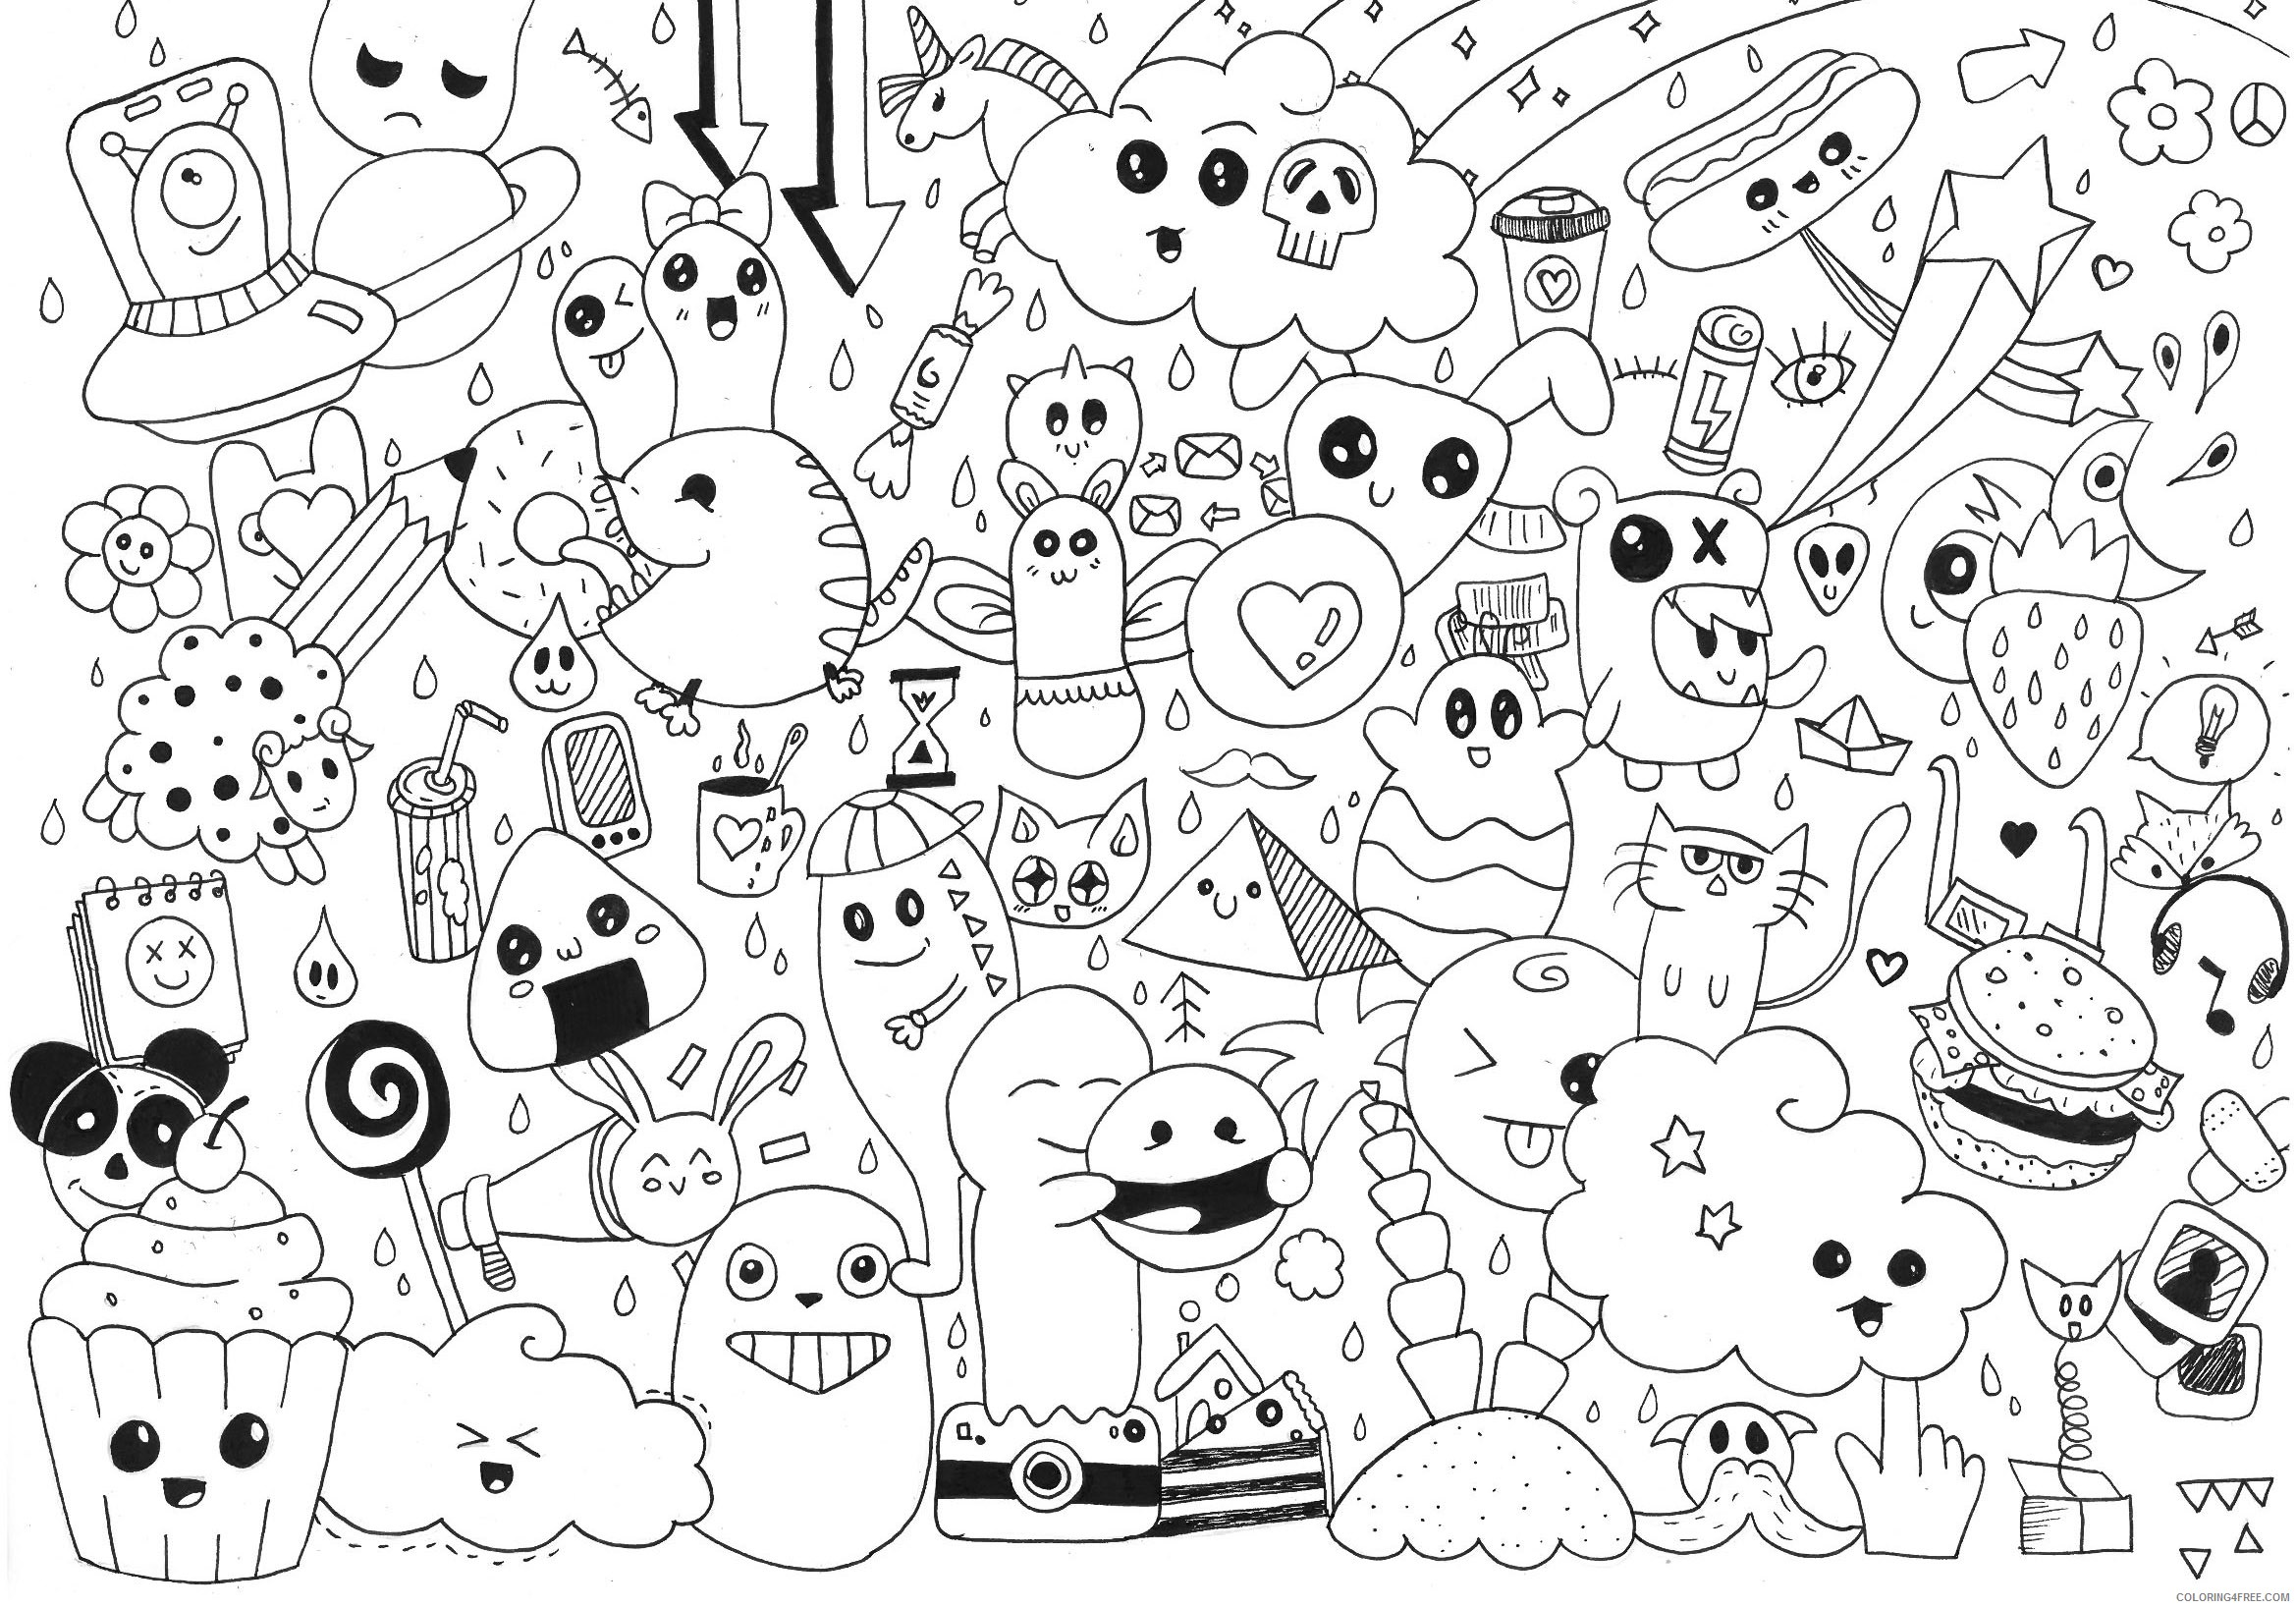 doodle coloring pages kawaii Coloring4free